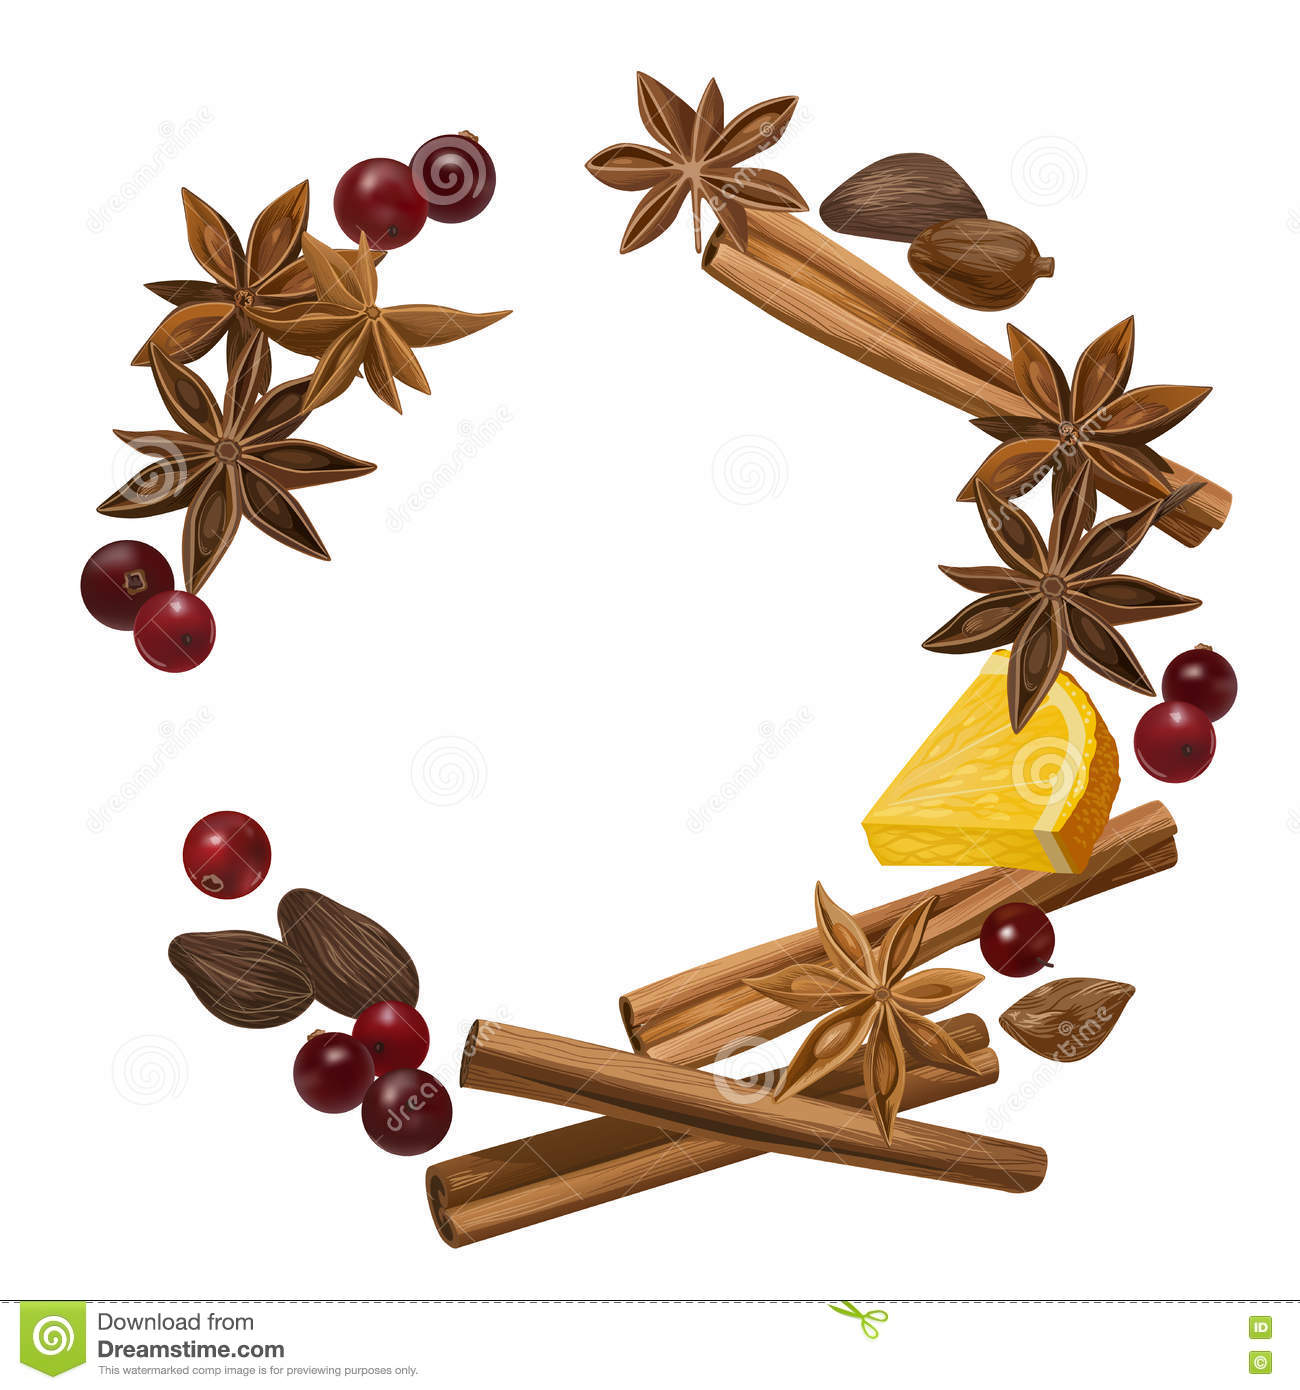 Winter Spice. Stock Vector - Image: 82274225